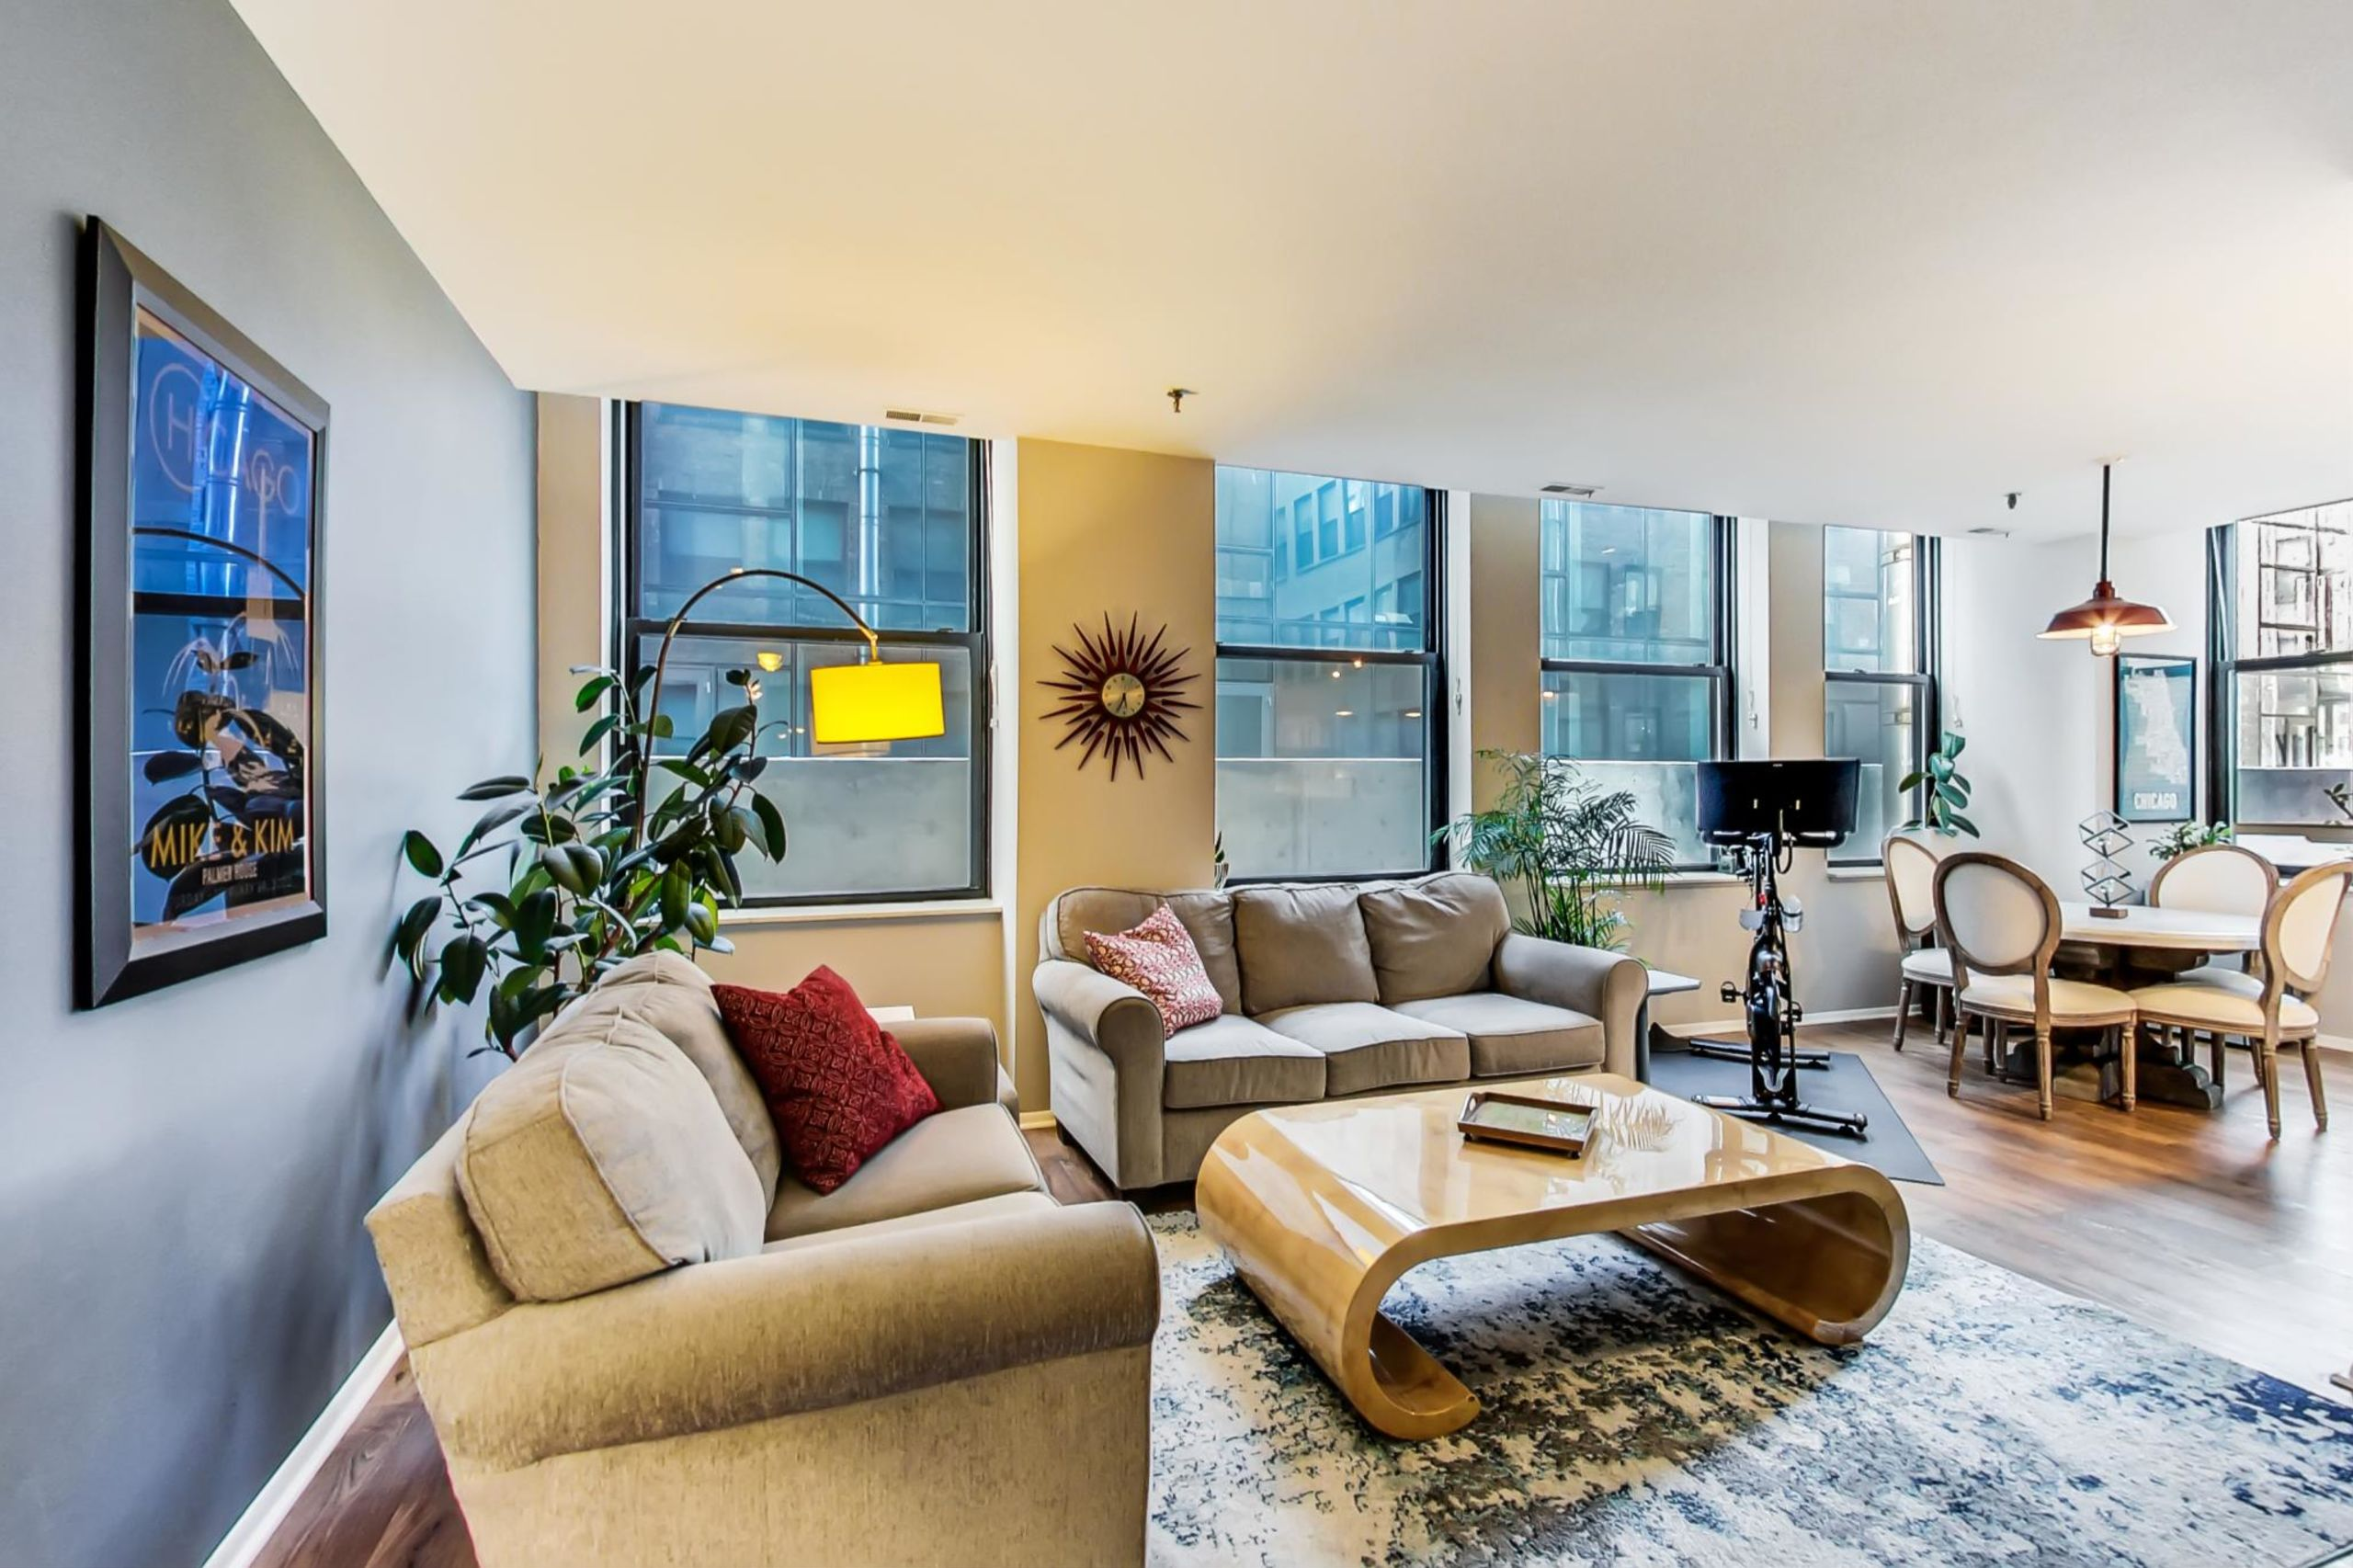 740 S. Federal #504 - For Sale